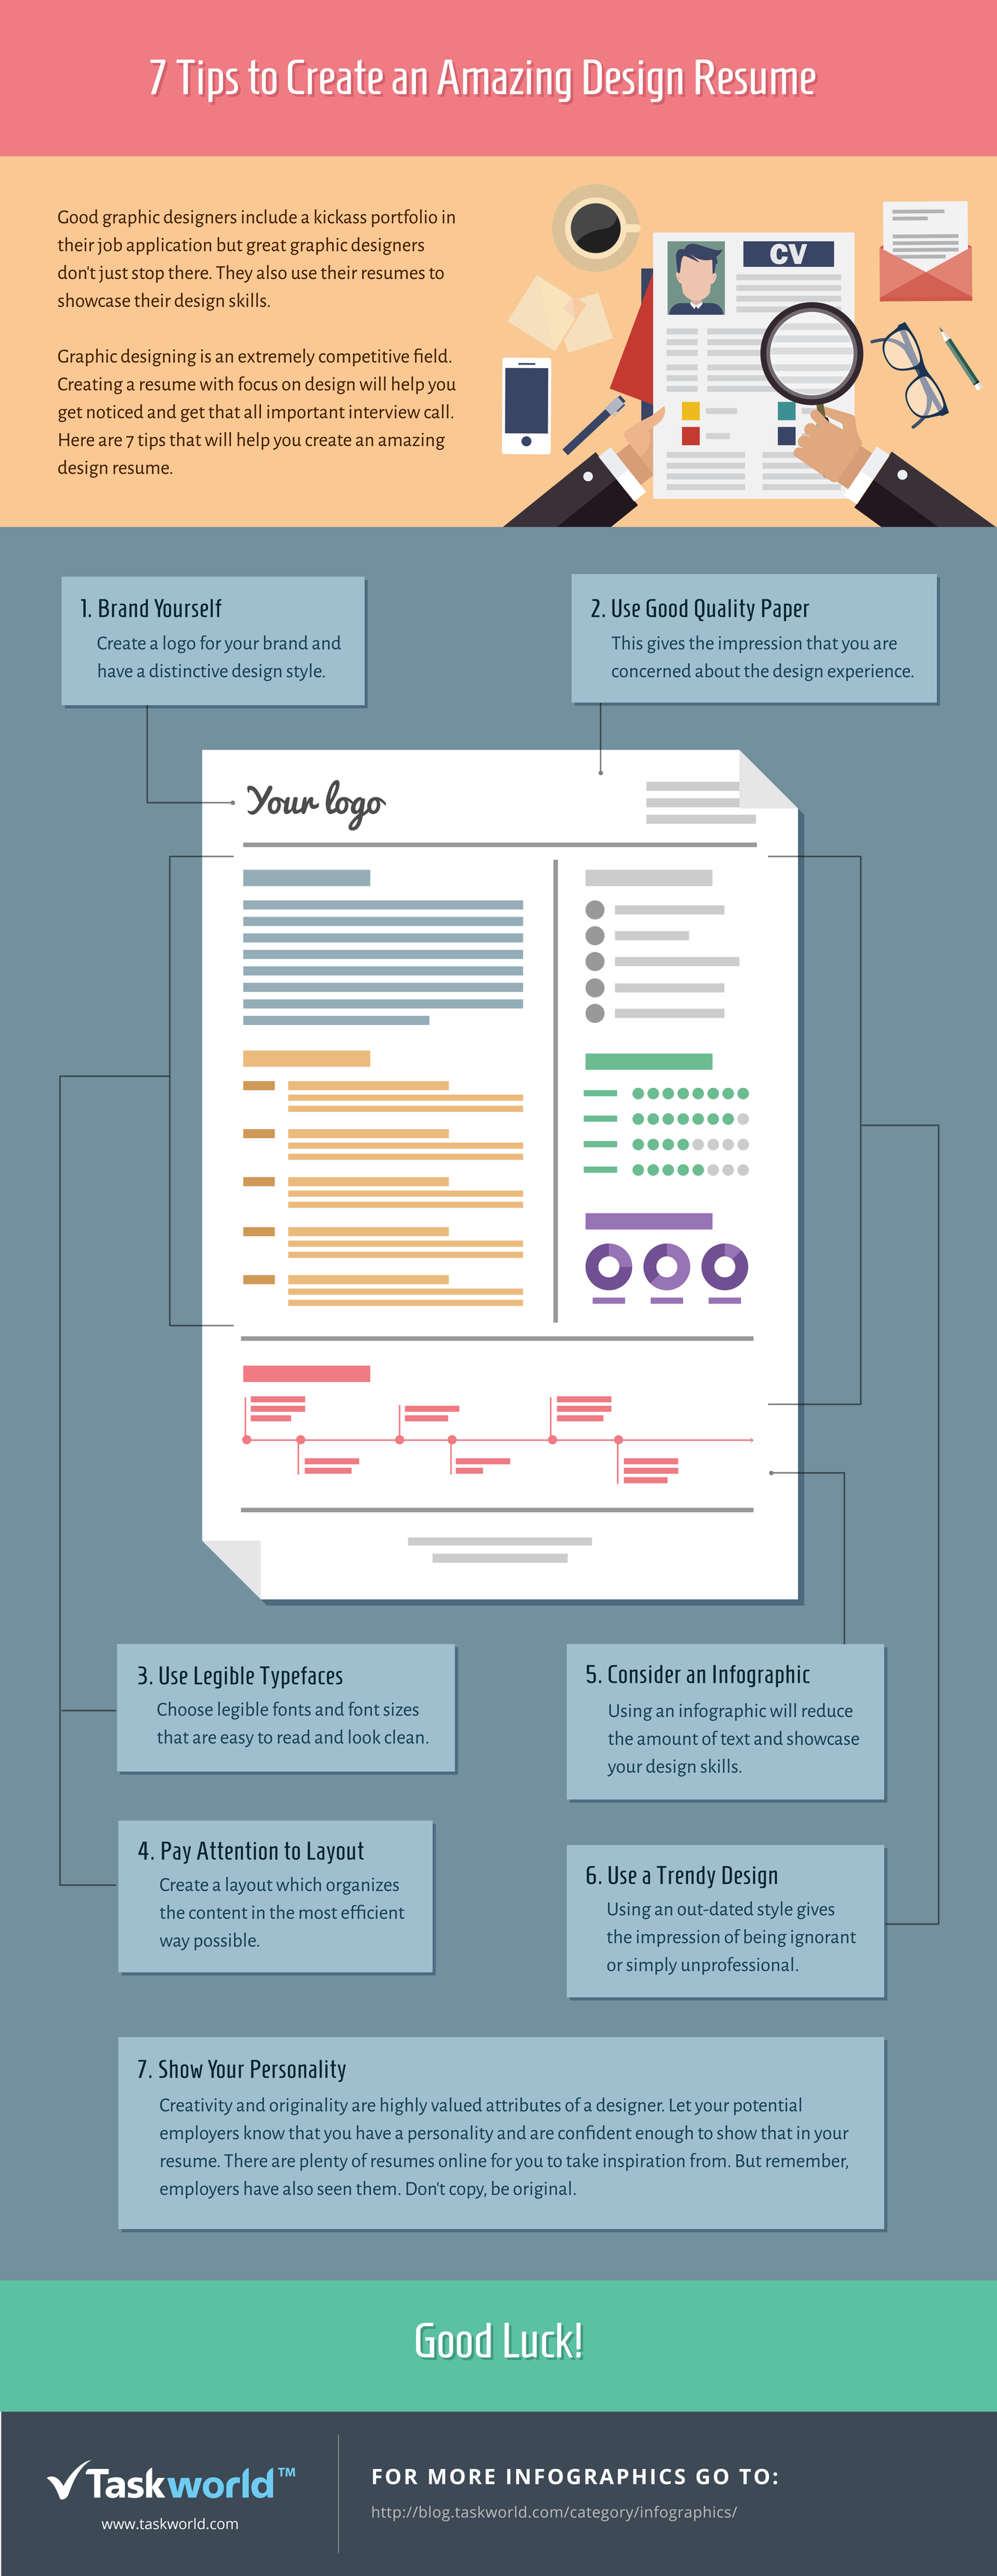 7 Tips to Create an Amazing Design Resume #infographic   Design ...